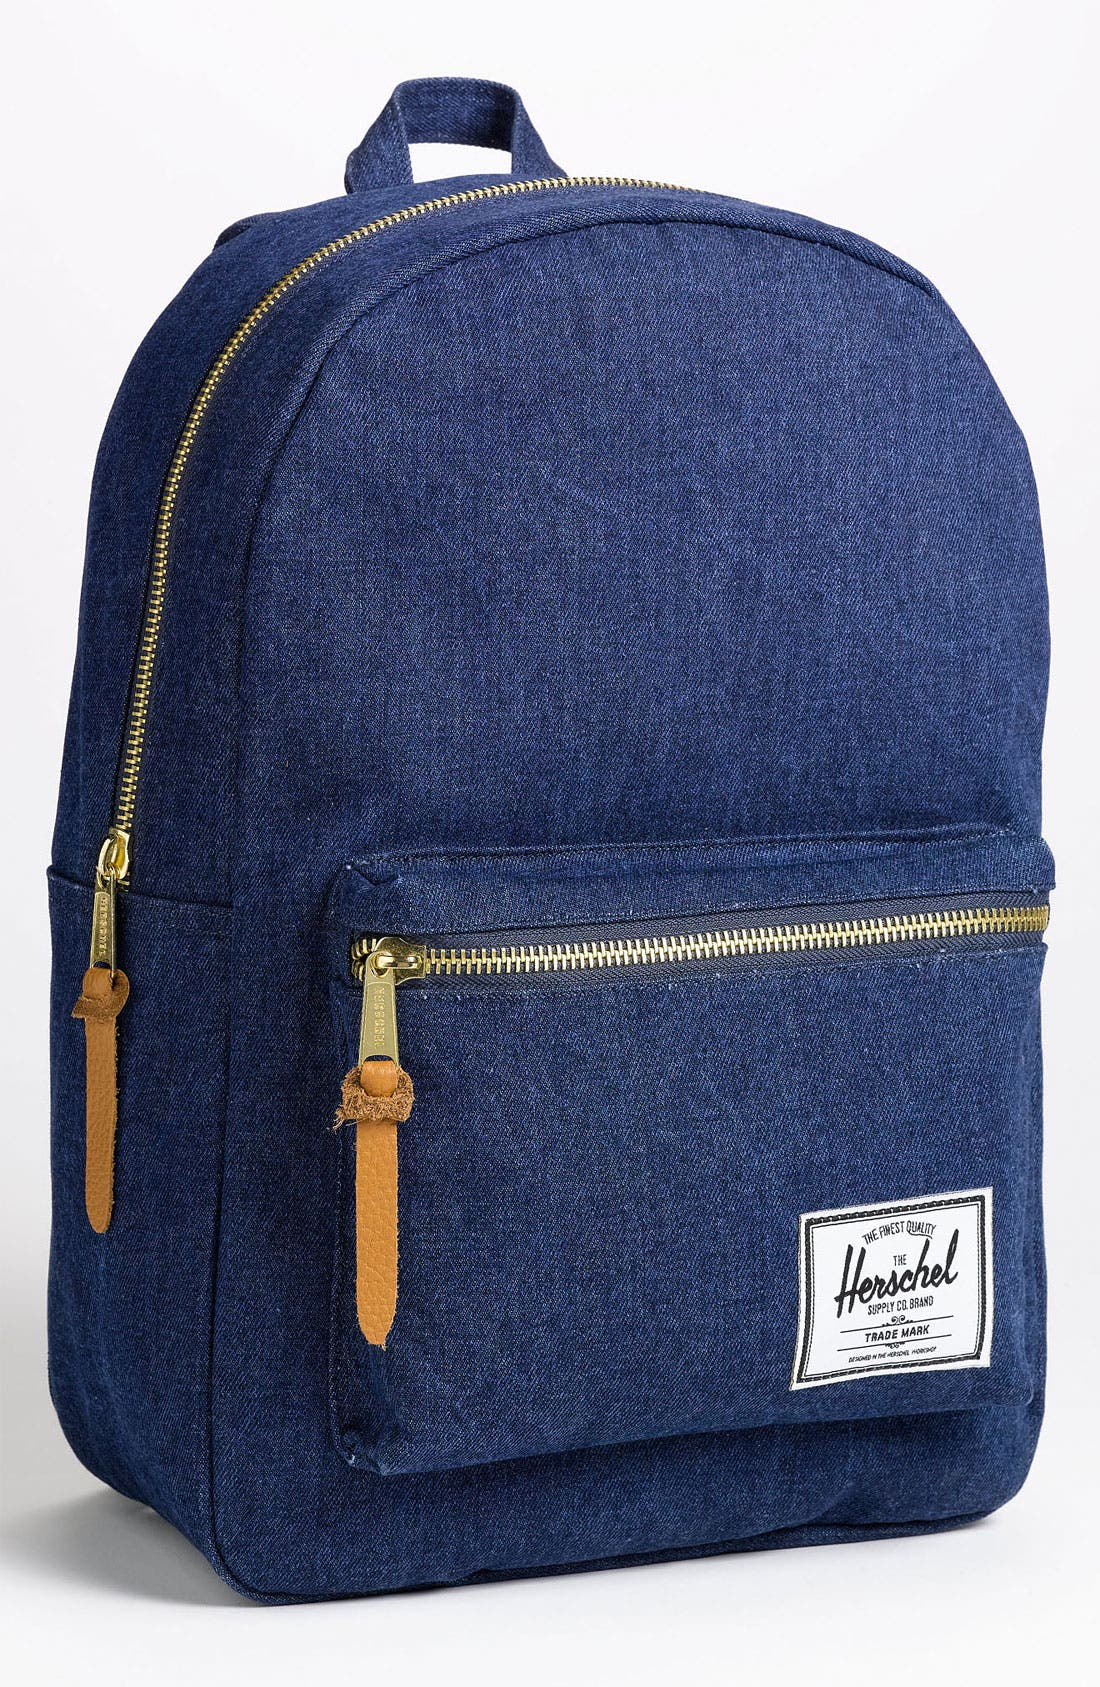 Alternate Image 1 Selected - Herschel Supply Co. 'Settlement - Denim Collection' Backpack